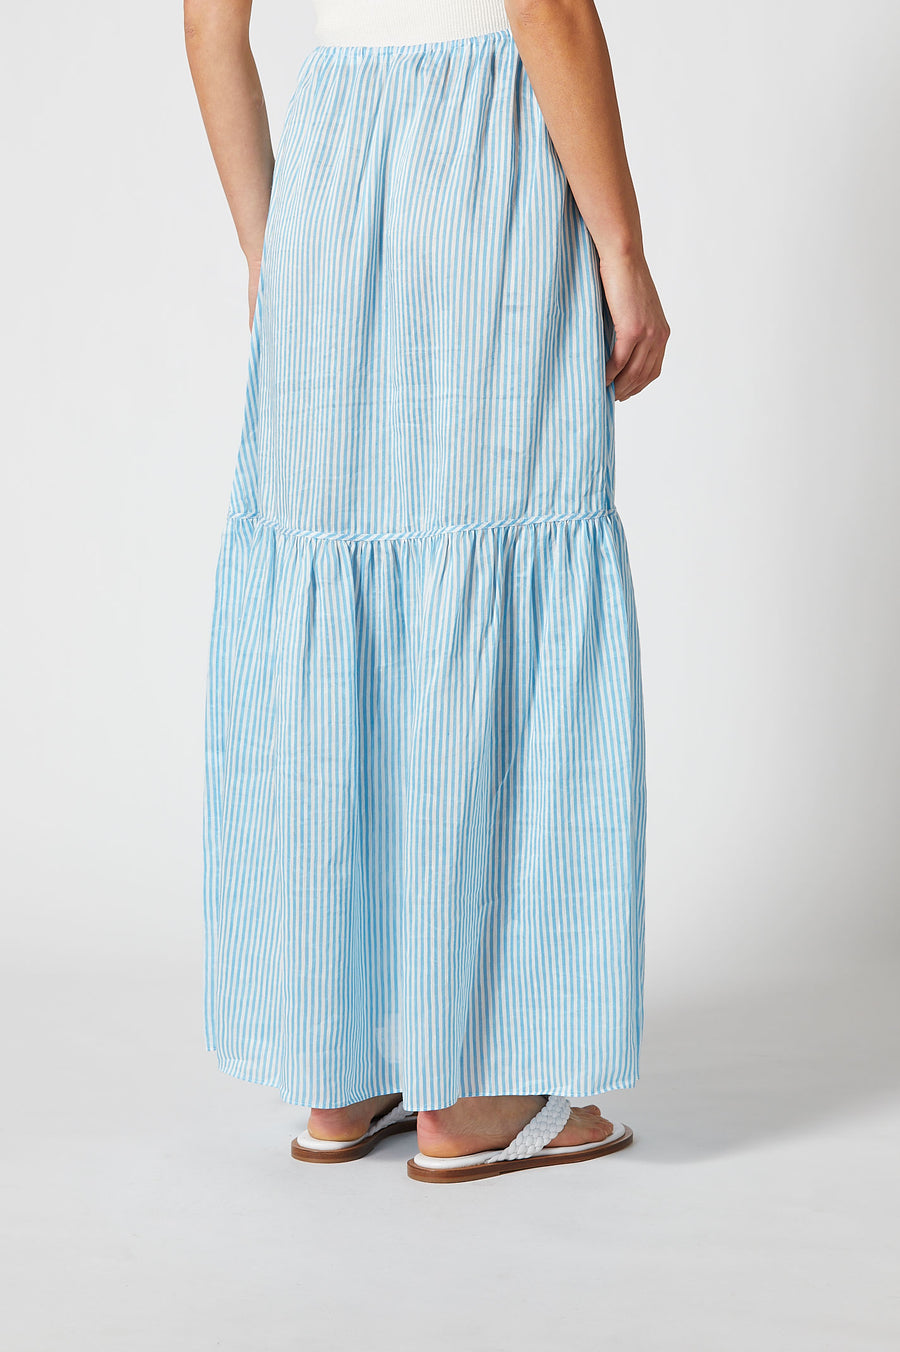 Crafted from a lightweight linen silk blend in a sky blue striped print, the  maxi skirt features a floaty, tired silhouette, concealed side pockets, and drawstring waist.